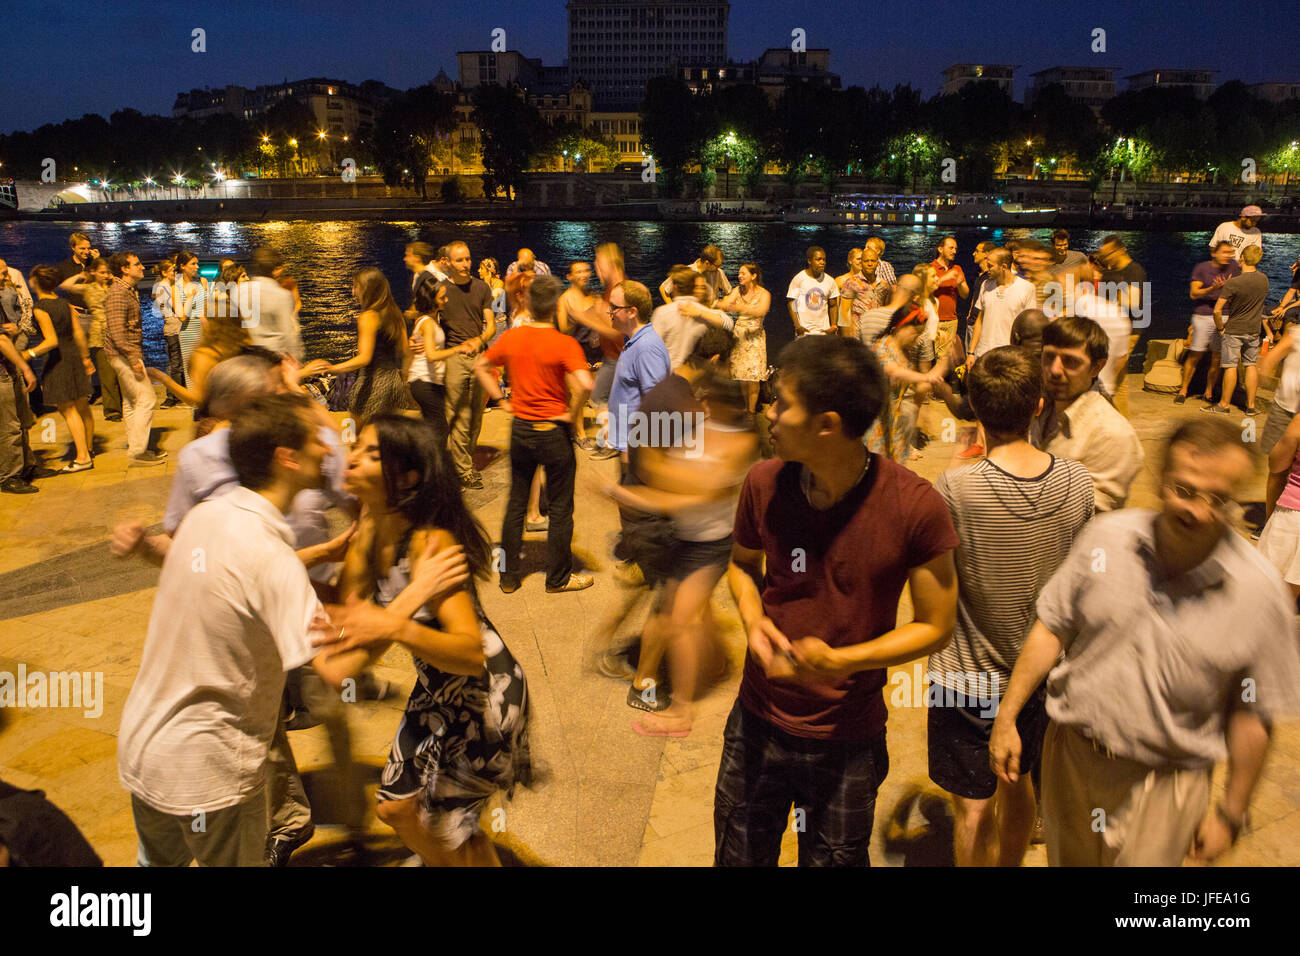 On summer nights Parisians learn and dance the tango near the Seine River. - Stock Image